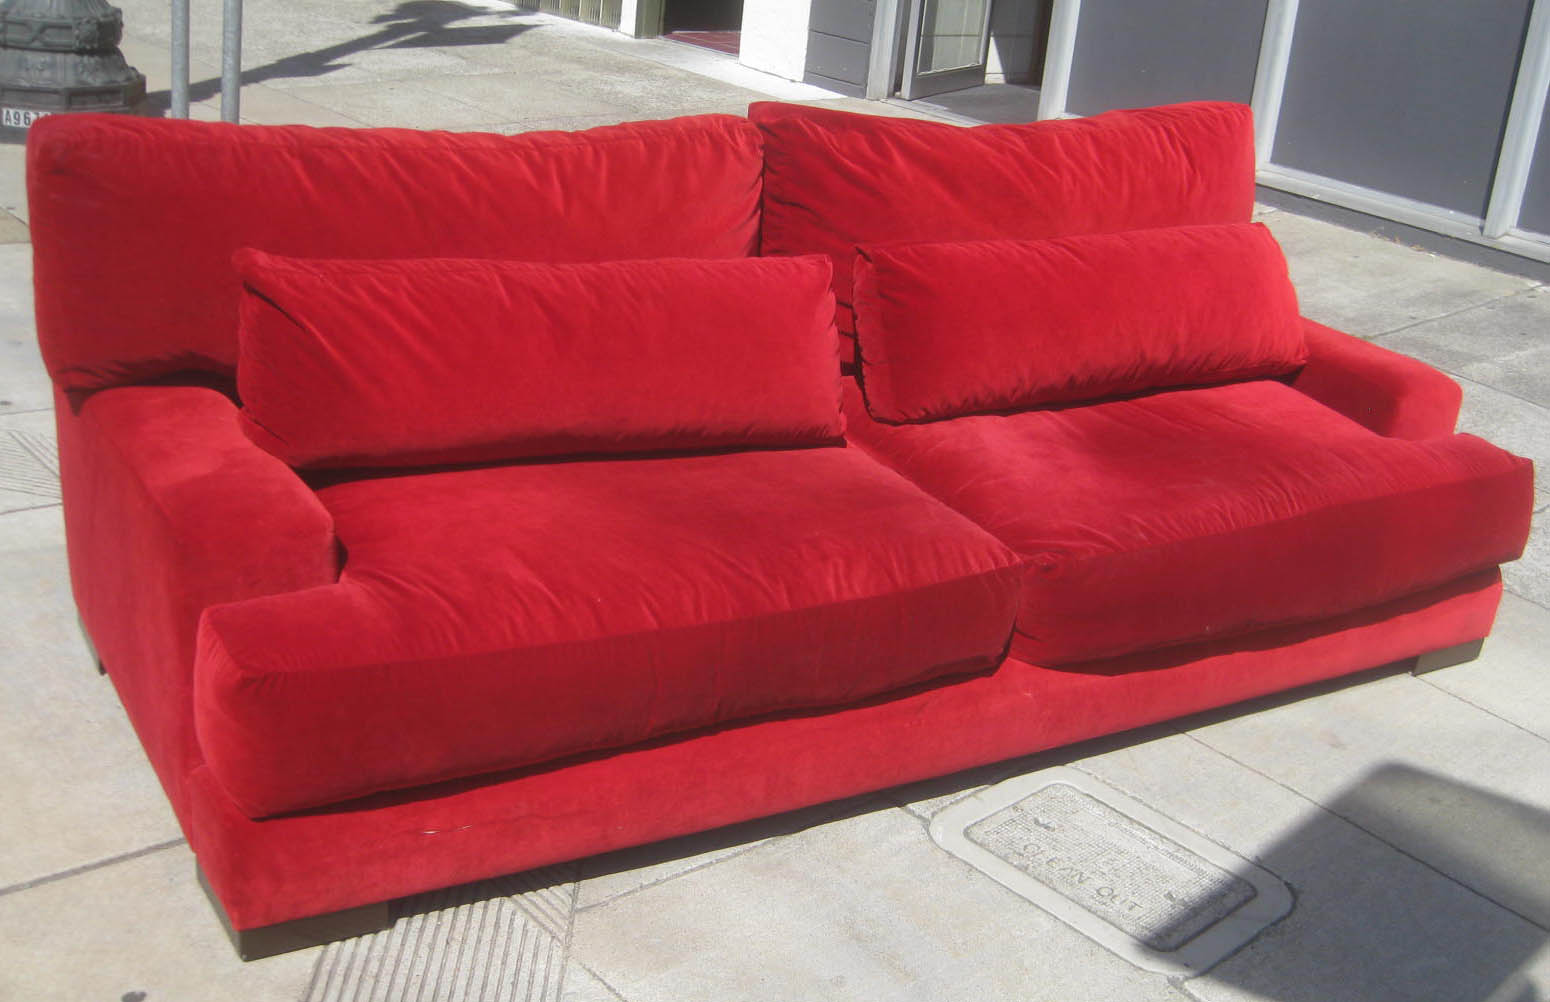 red velvet sofa furniture sofas for small rooms uhuru and collectibles sold 200